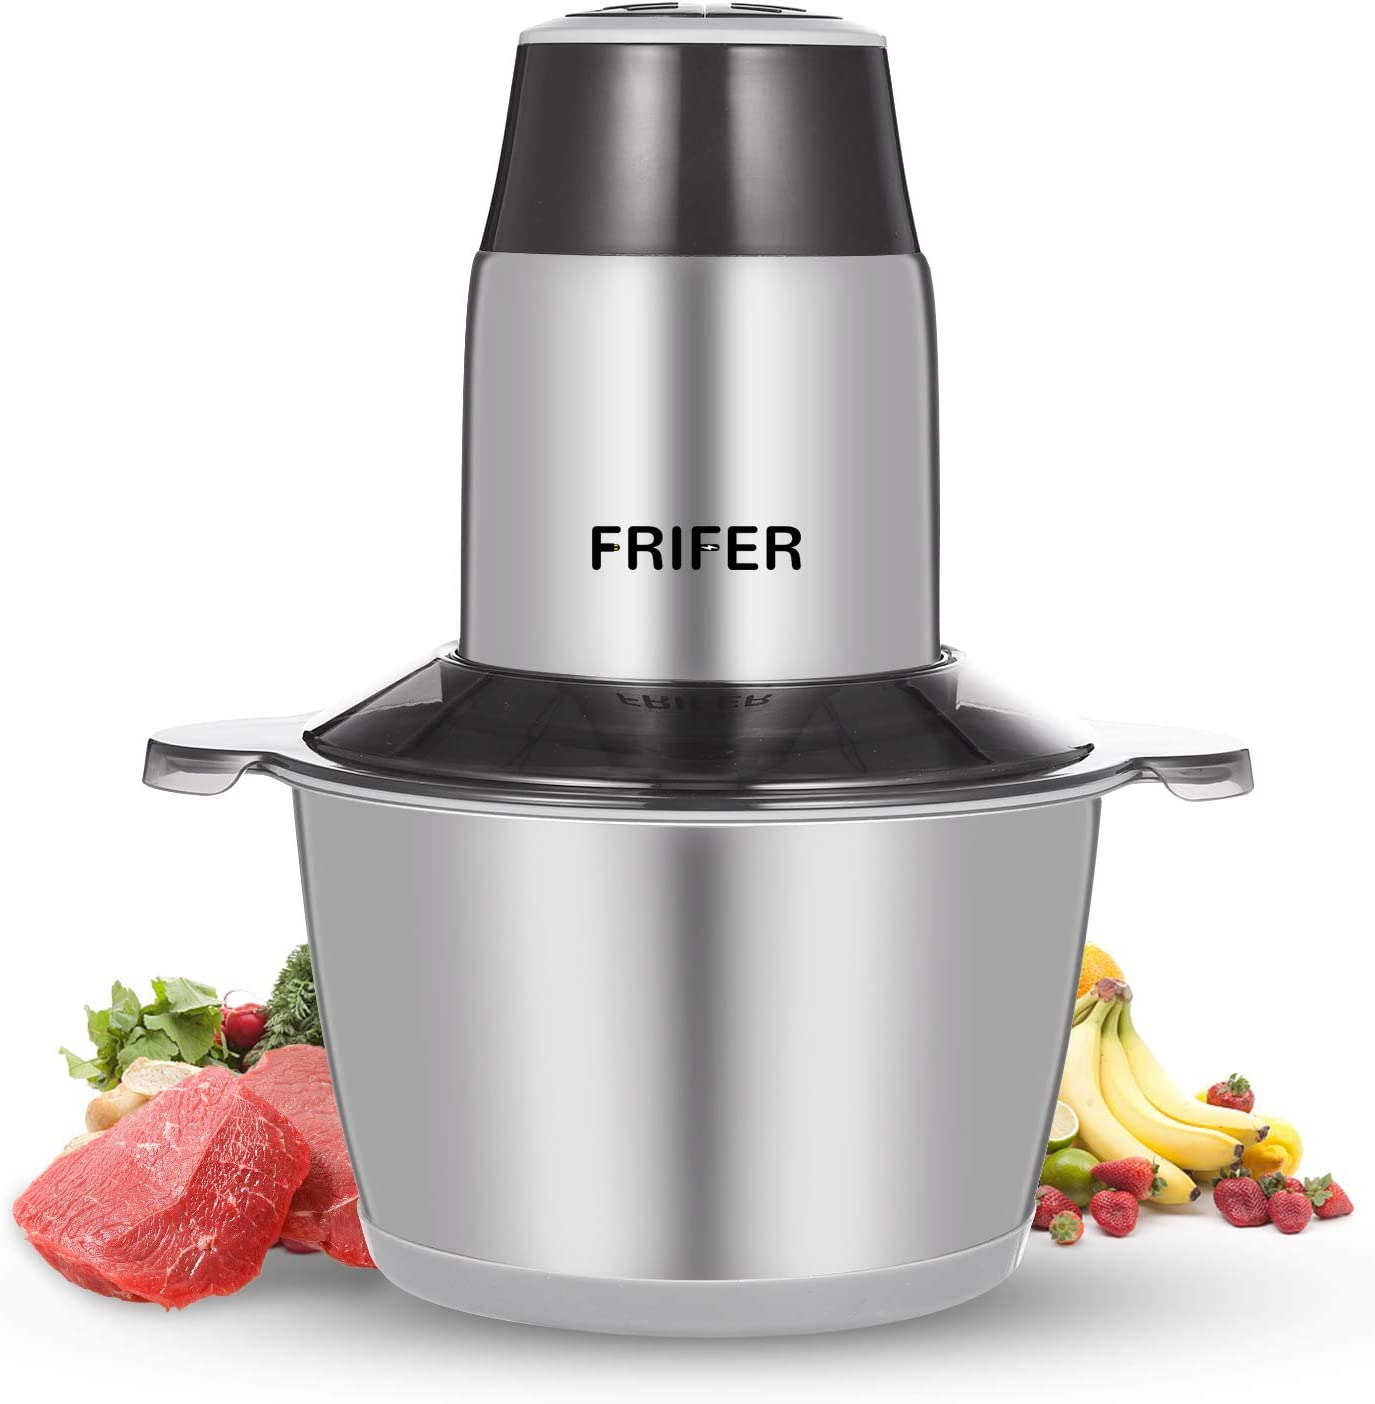 Frifer Electric Food Chopper Meat Grinder Phoenix Mall with 2L Popular popular Stai